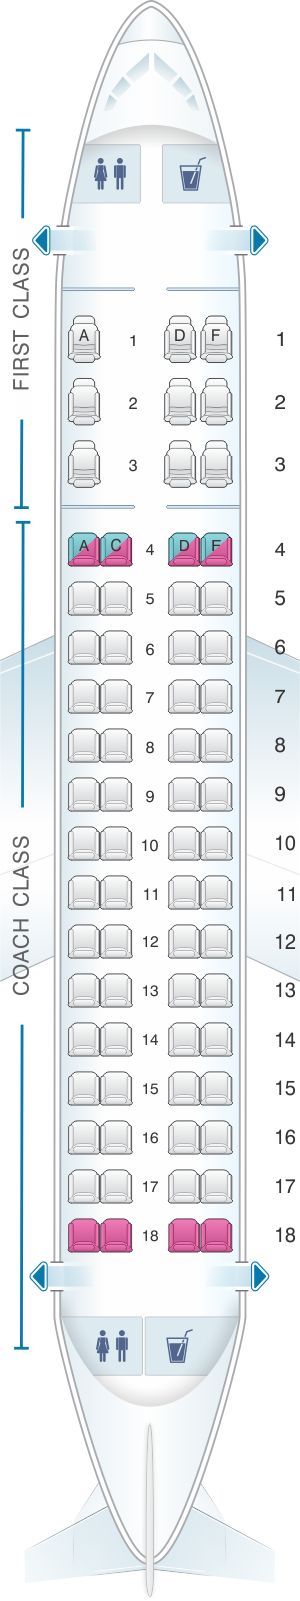 Seat map for US Airways Embraer 170